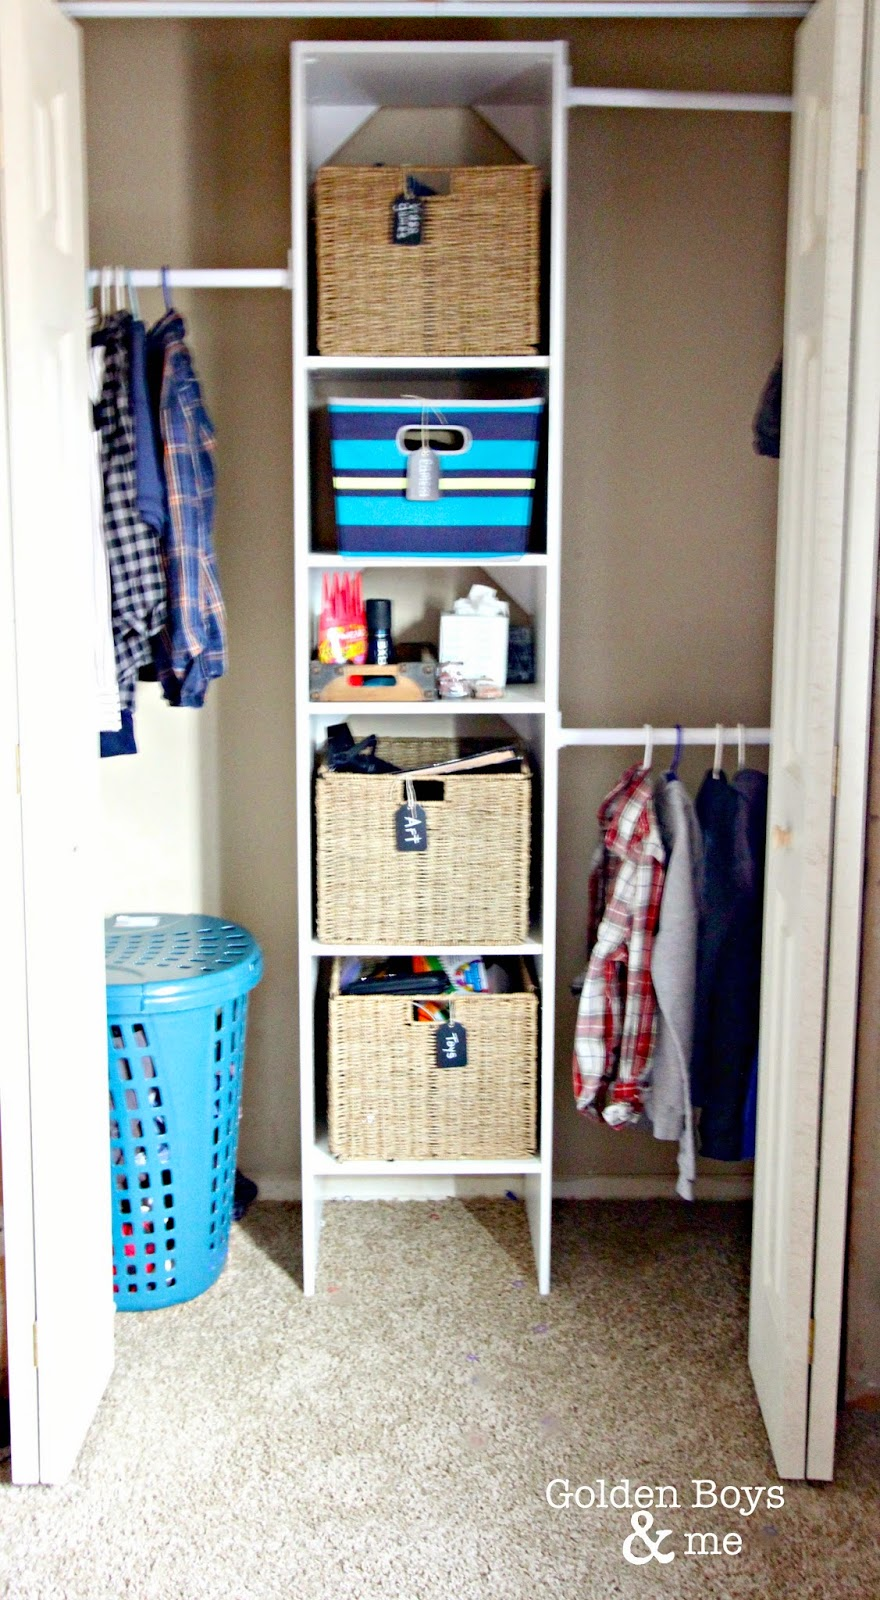 Home Depot closet organizer in boy's bedroom- www.goldenboysandme.com